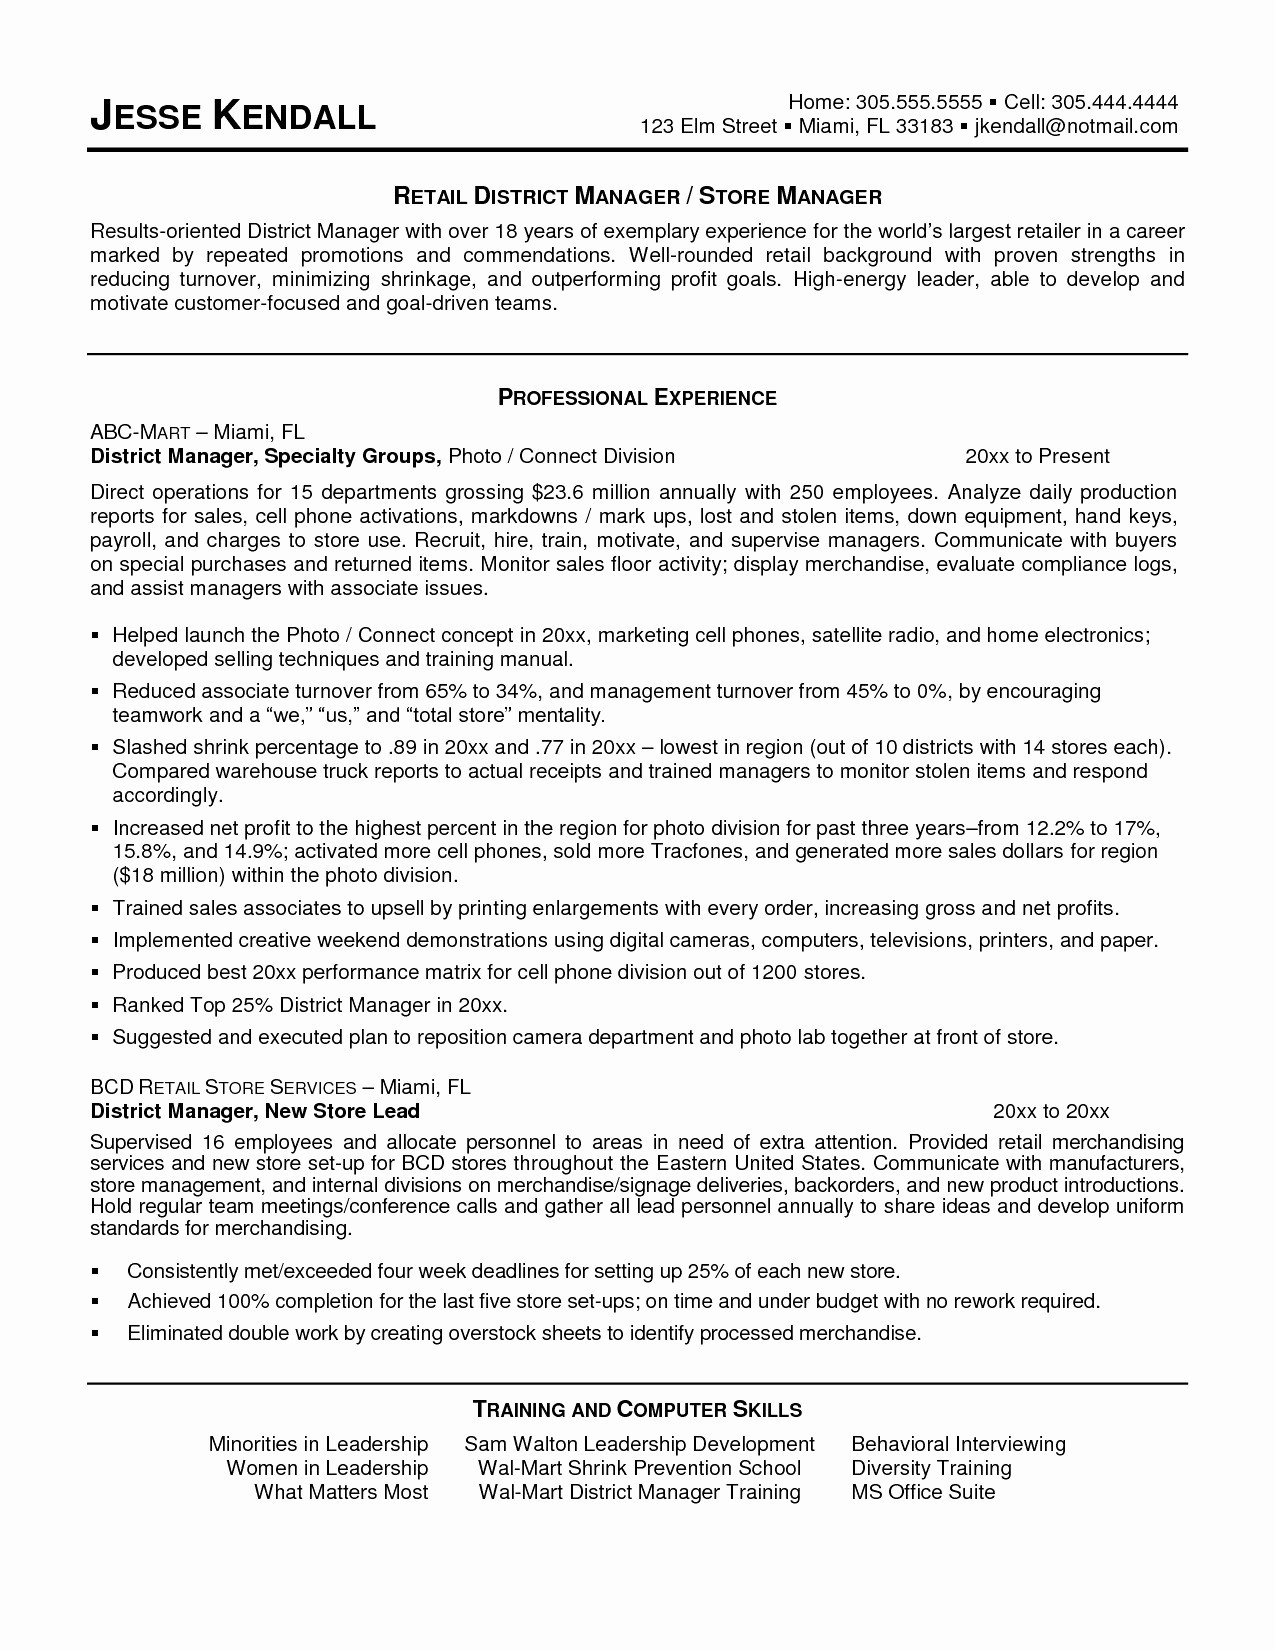 Computer Skills to List On Resume - Resume Skills List Fresh What is A Resume New Lovely Skills for A